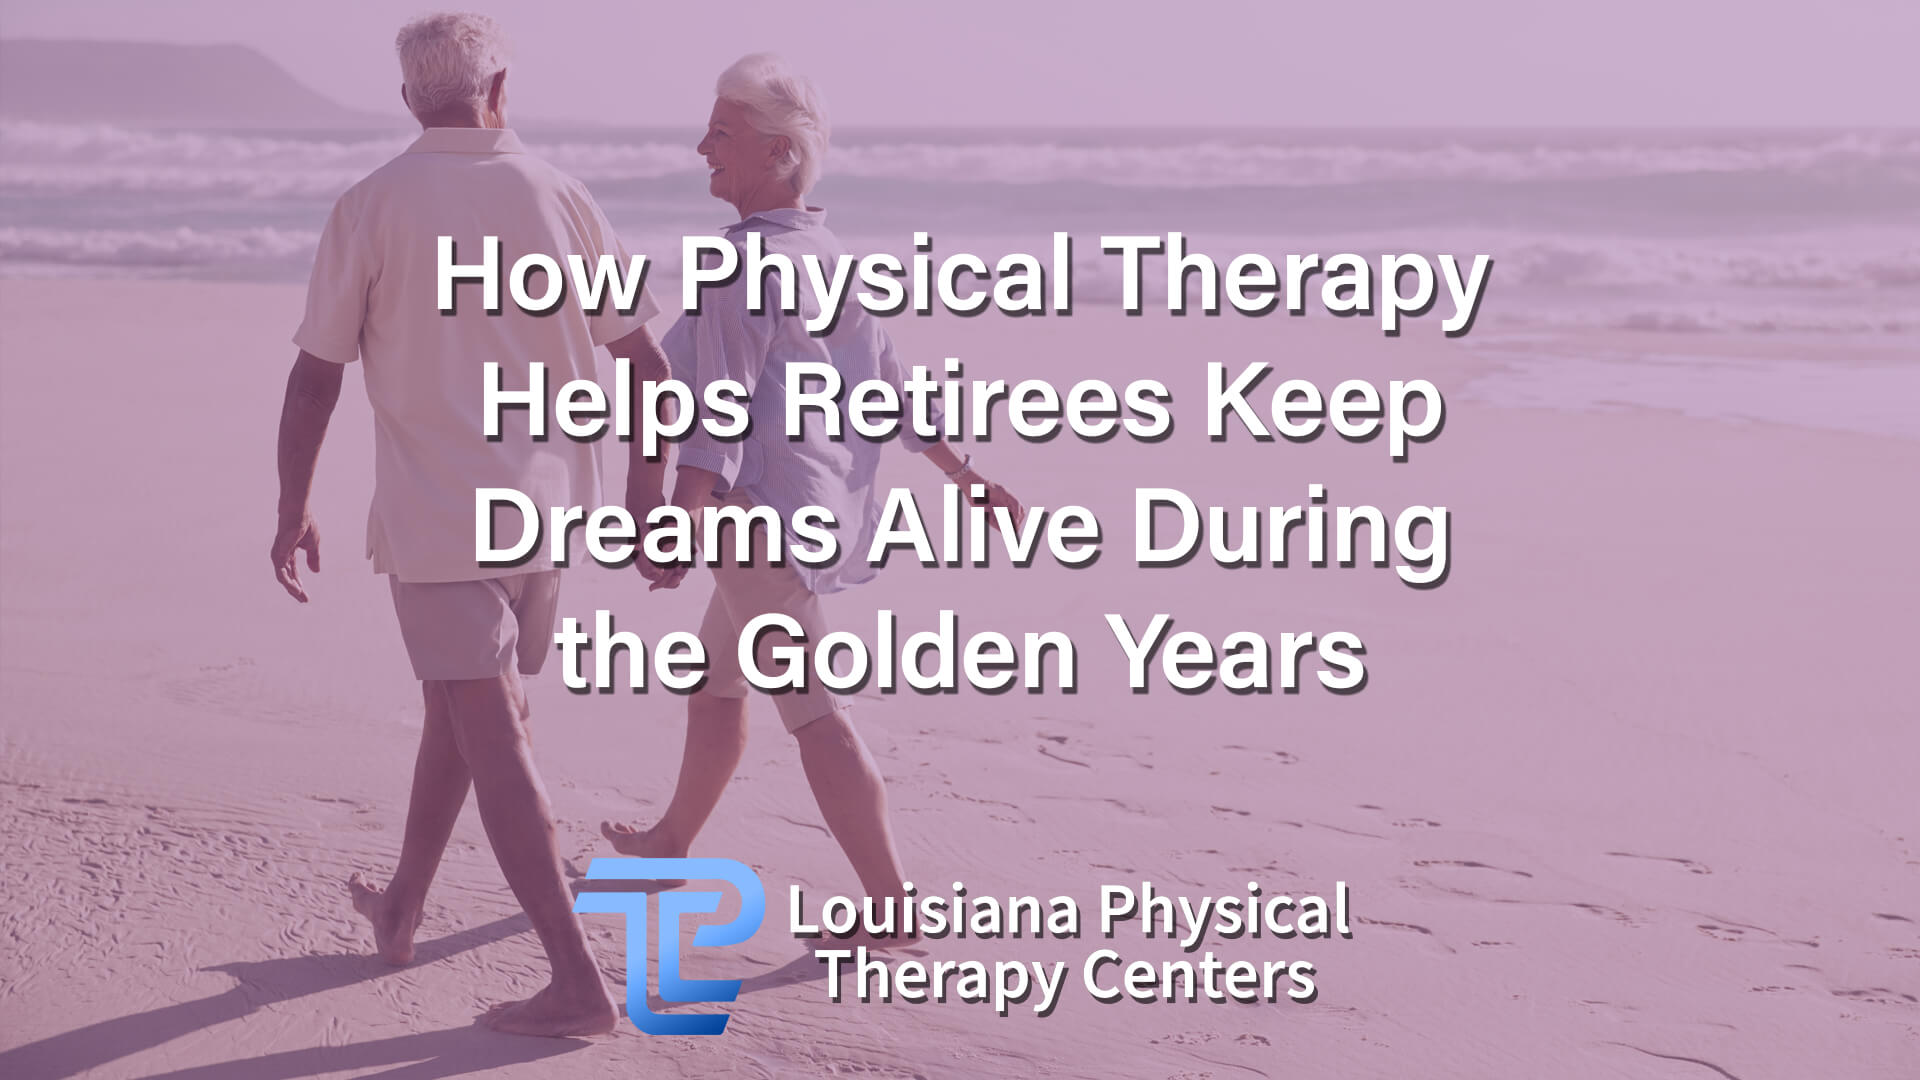 How Physical Therapy Helps Retirees Keep Dreams Alive During the Golden Years